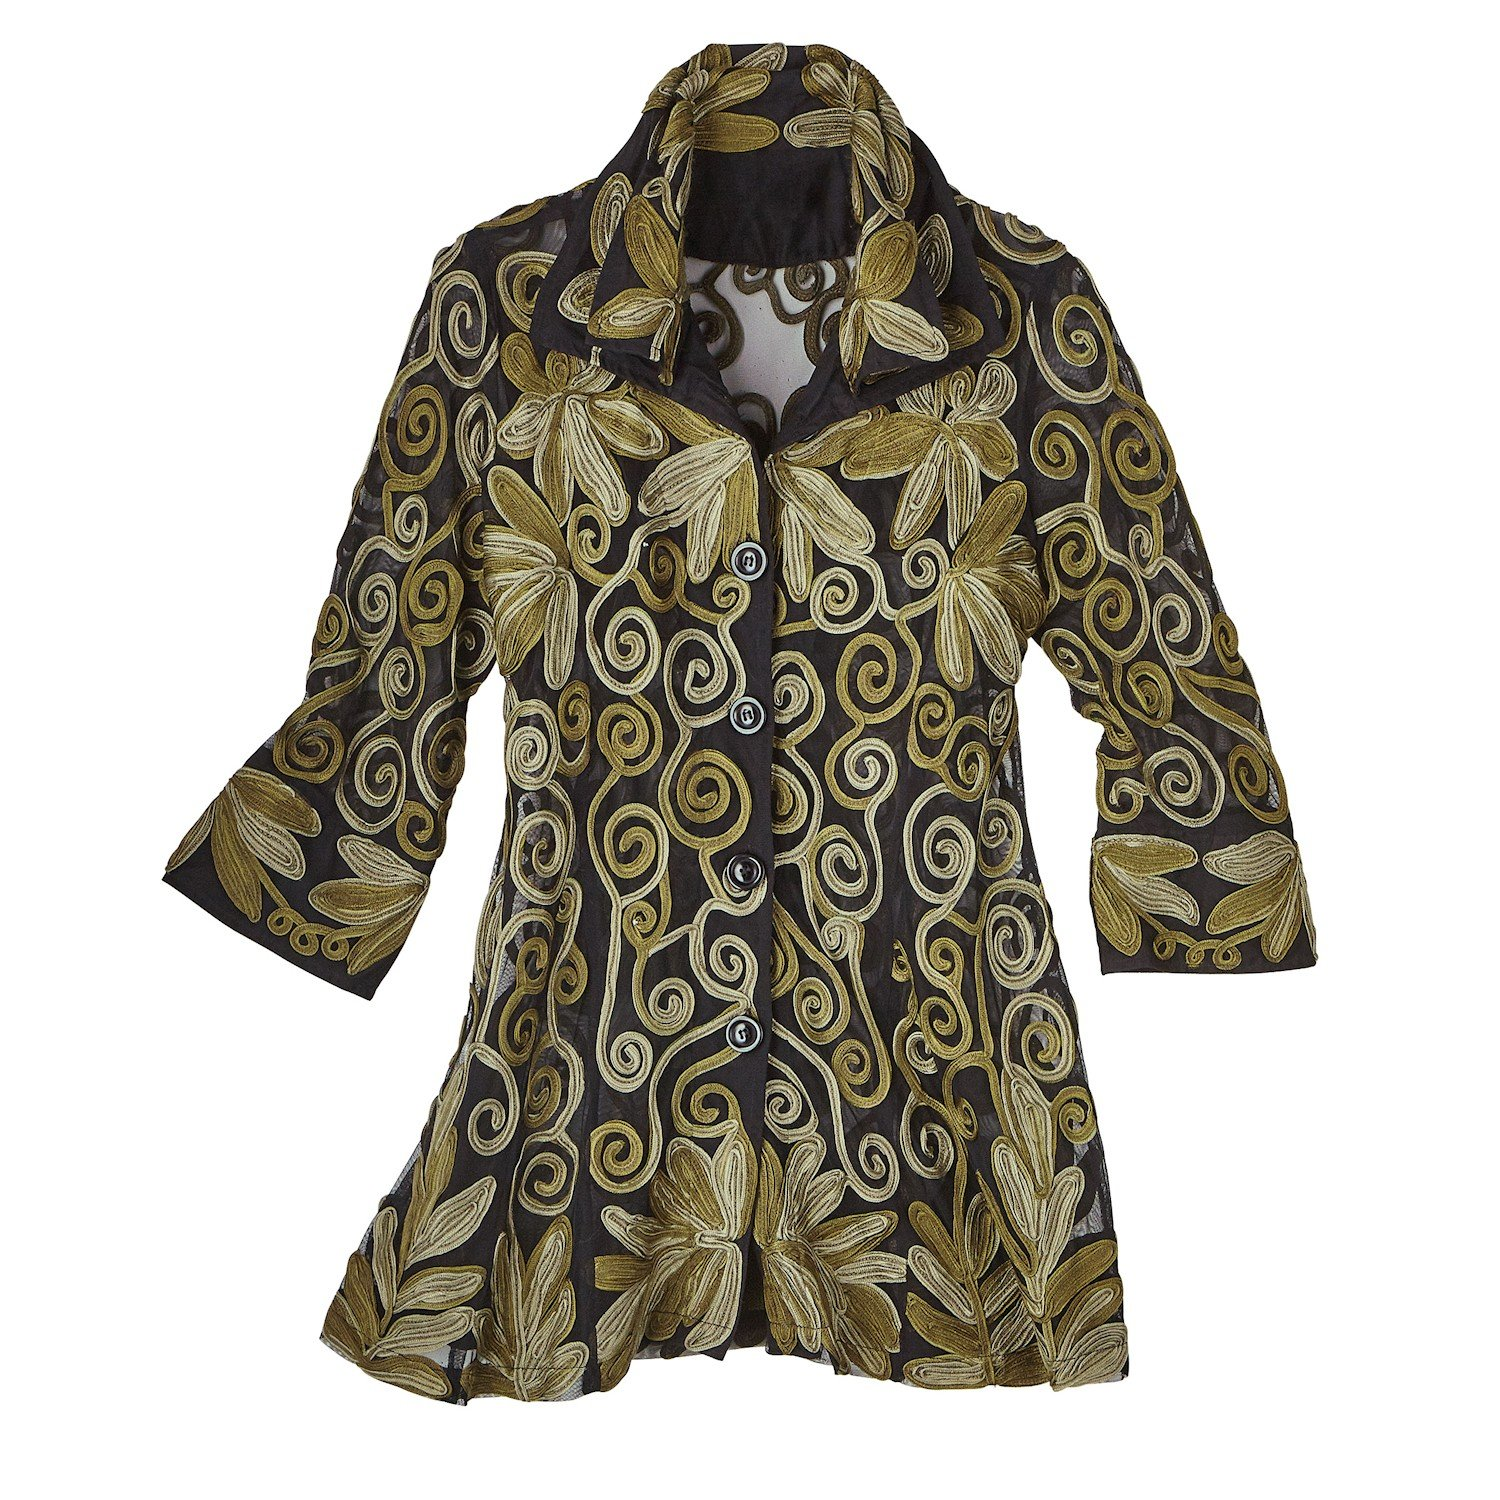 Parsley & Sage Women's Button-Down Tunic Shirt - All-Over Embroidery Metallic Crewelwork-Large